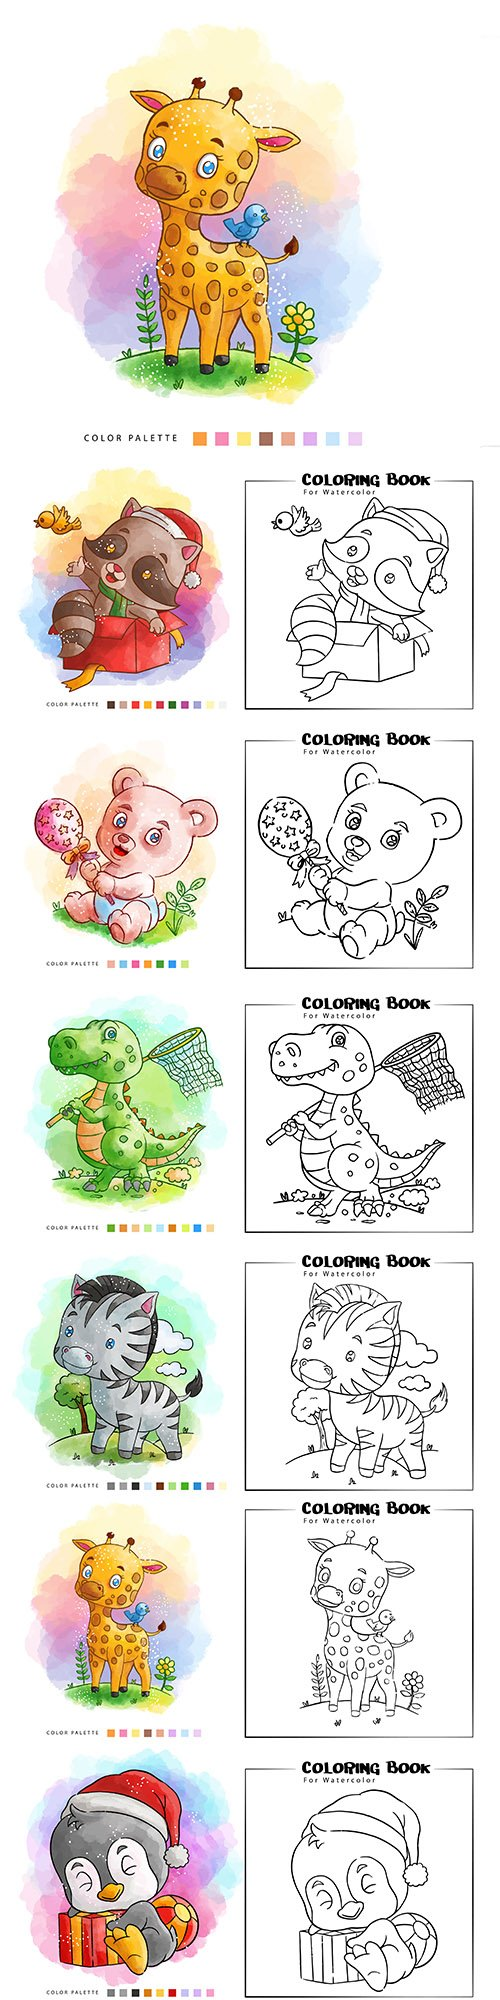 Coloring nice animal watercolor illustrations